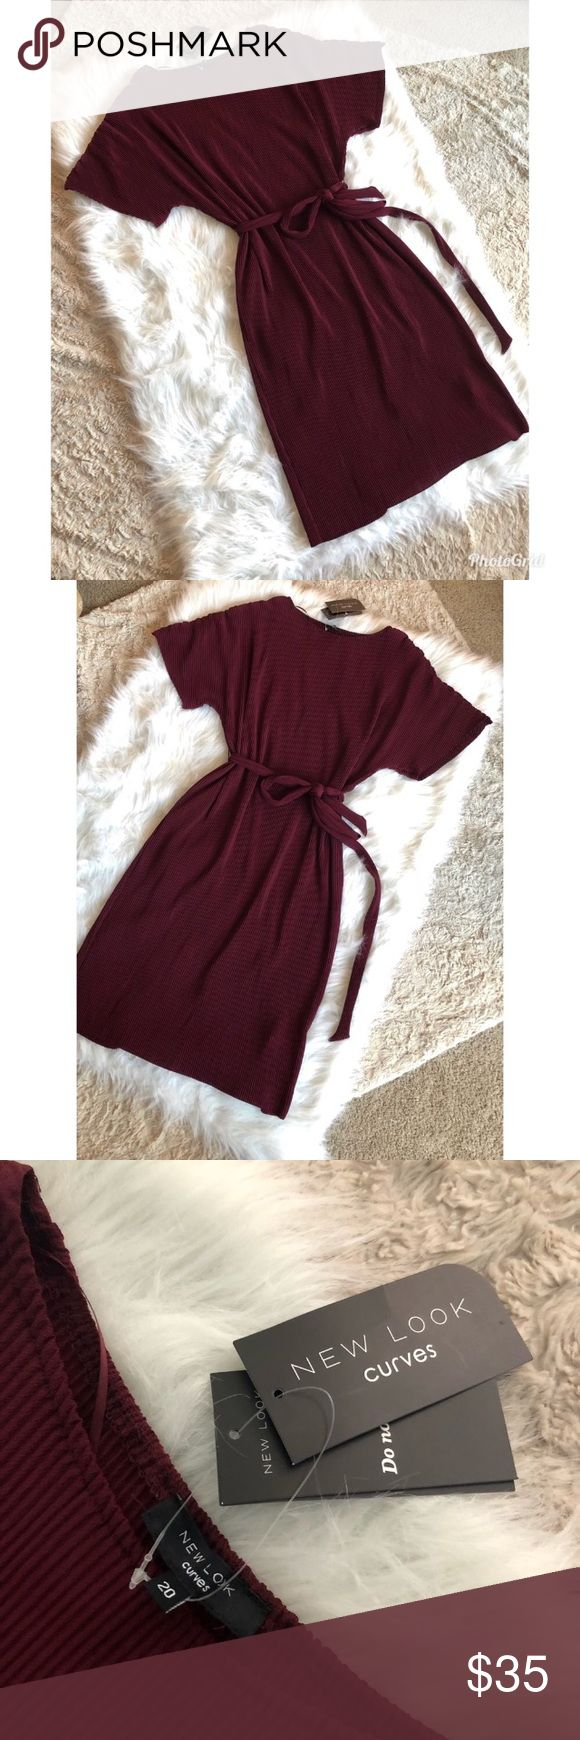 ASOS New Look Curves Dress NWT Gorgeous Burgundy/Wine colored ASOS New Looks Curves Dress, waist belt tie include, smoke free house ASOS Curve Dresses Midi